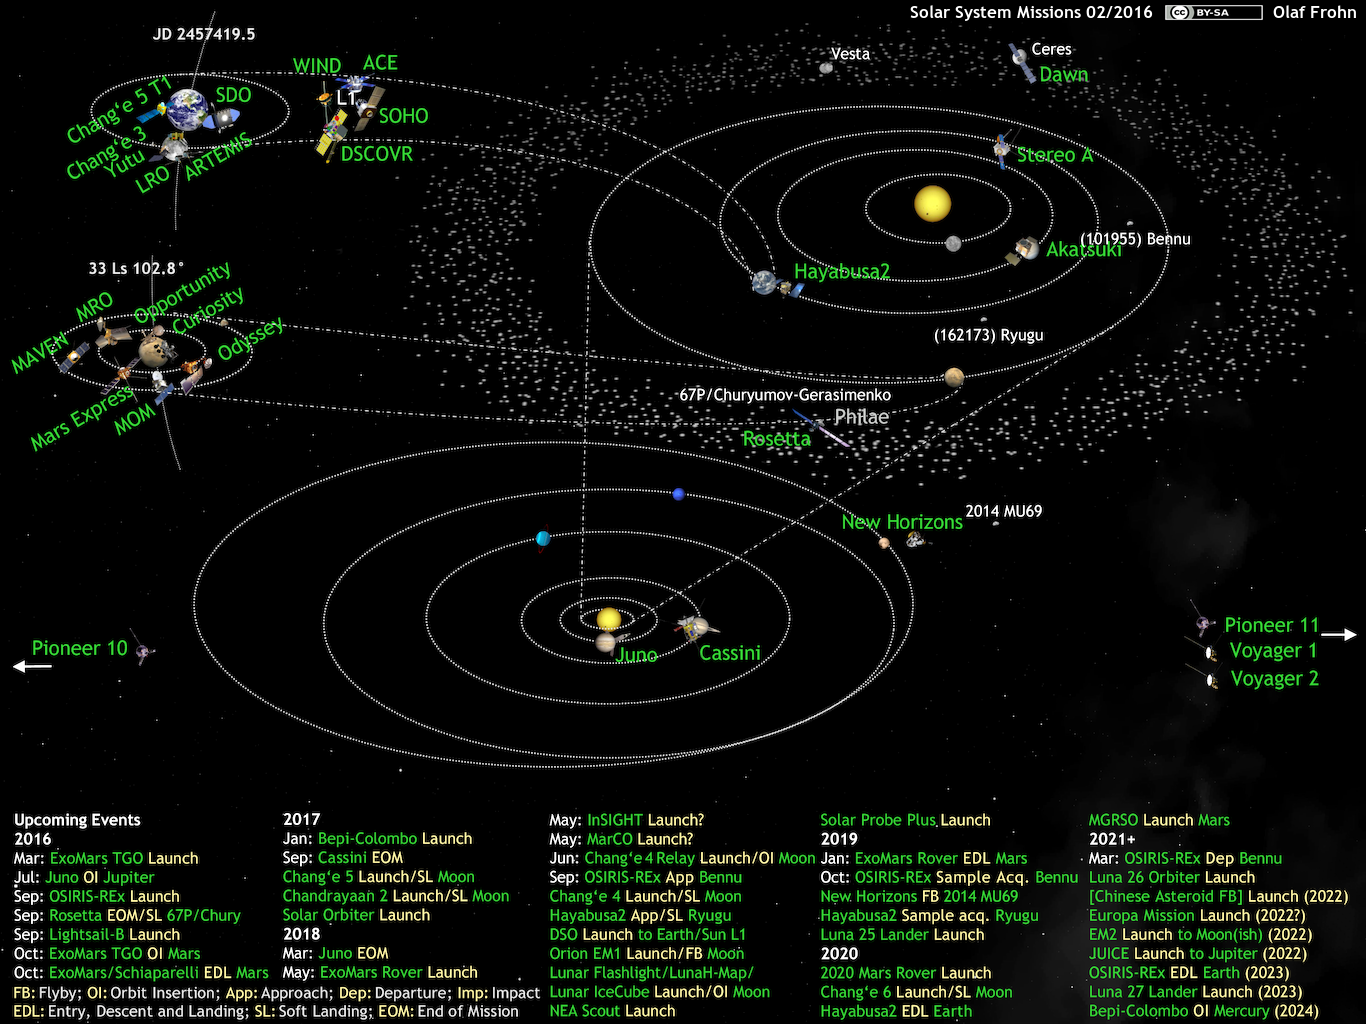 http://planetary.s3.amazonaws.com/assets/images/charts-diagrams/2016/20160129_solar-system-missions2016-02.png